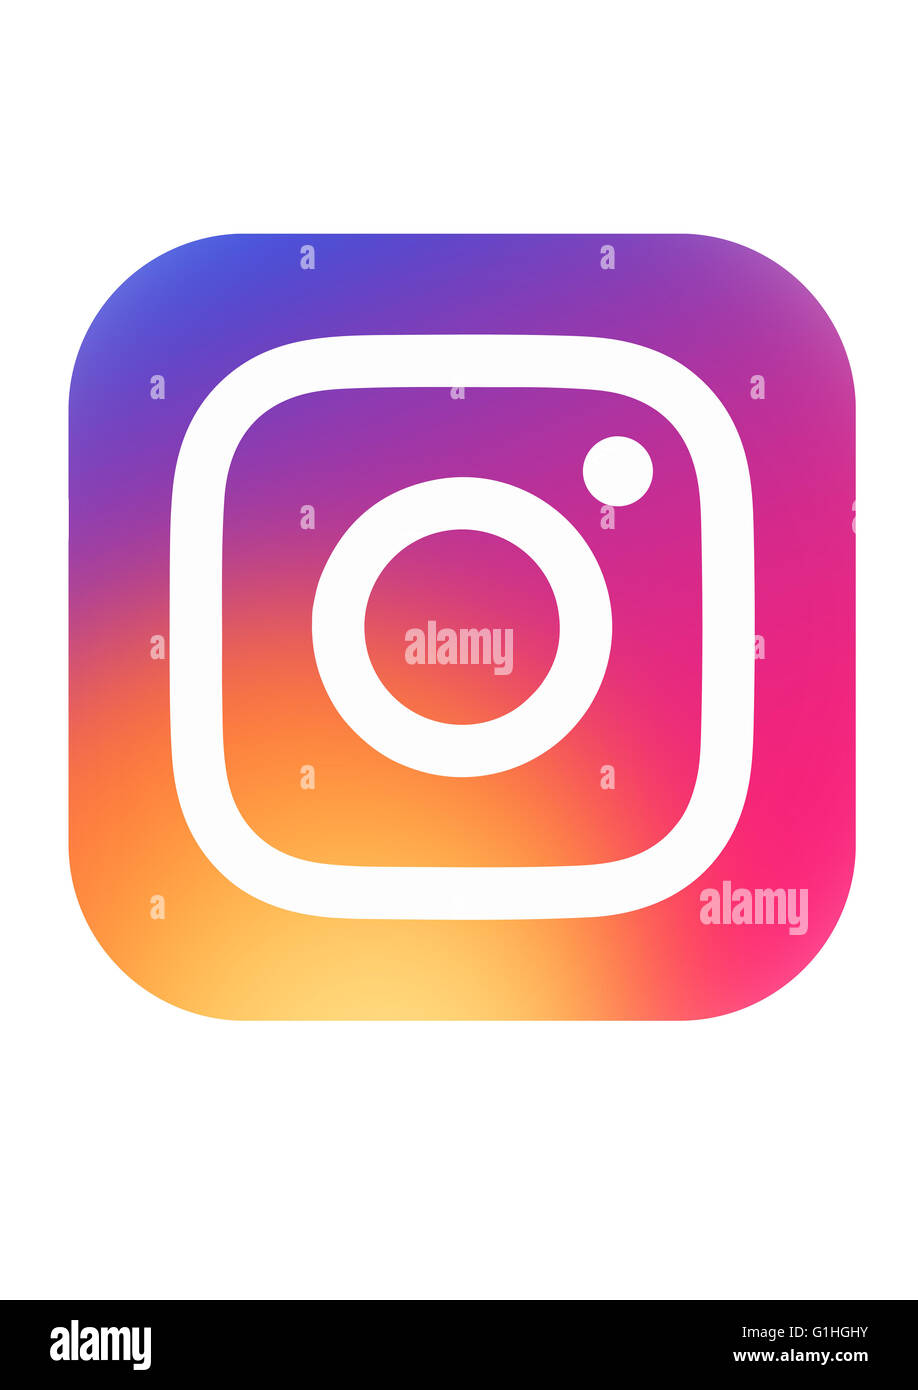 New Instagram logotype printed on white paper. - Stock Image